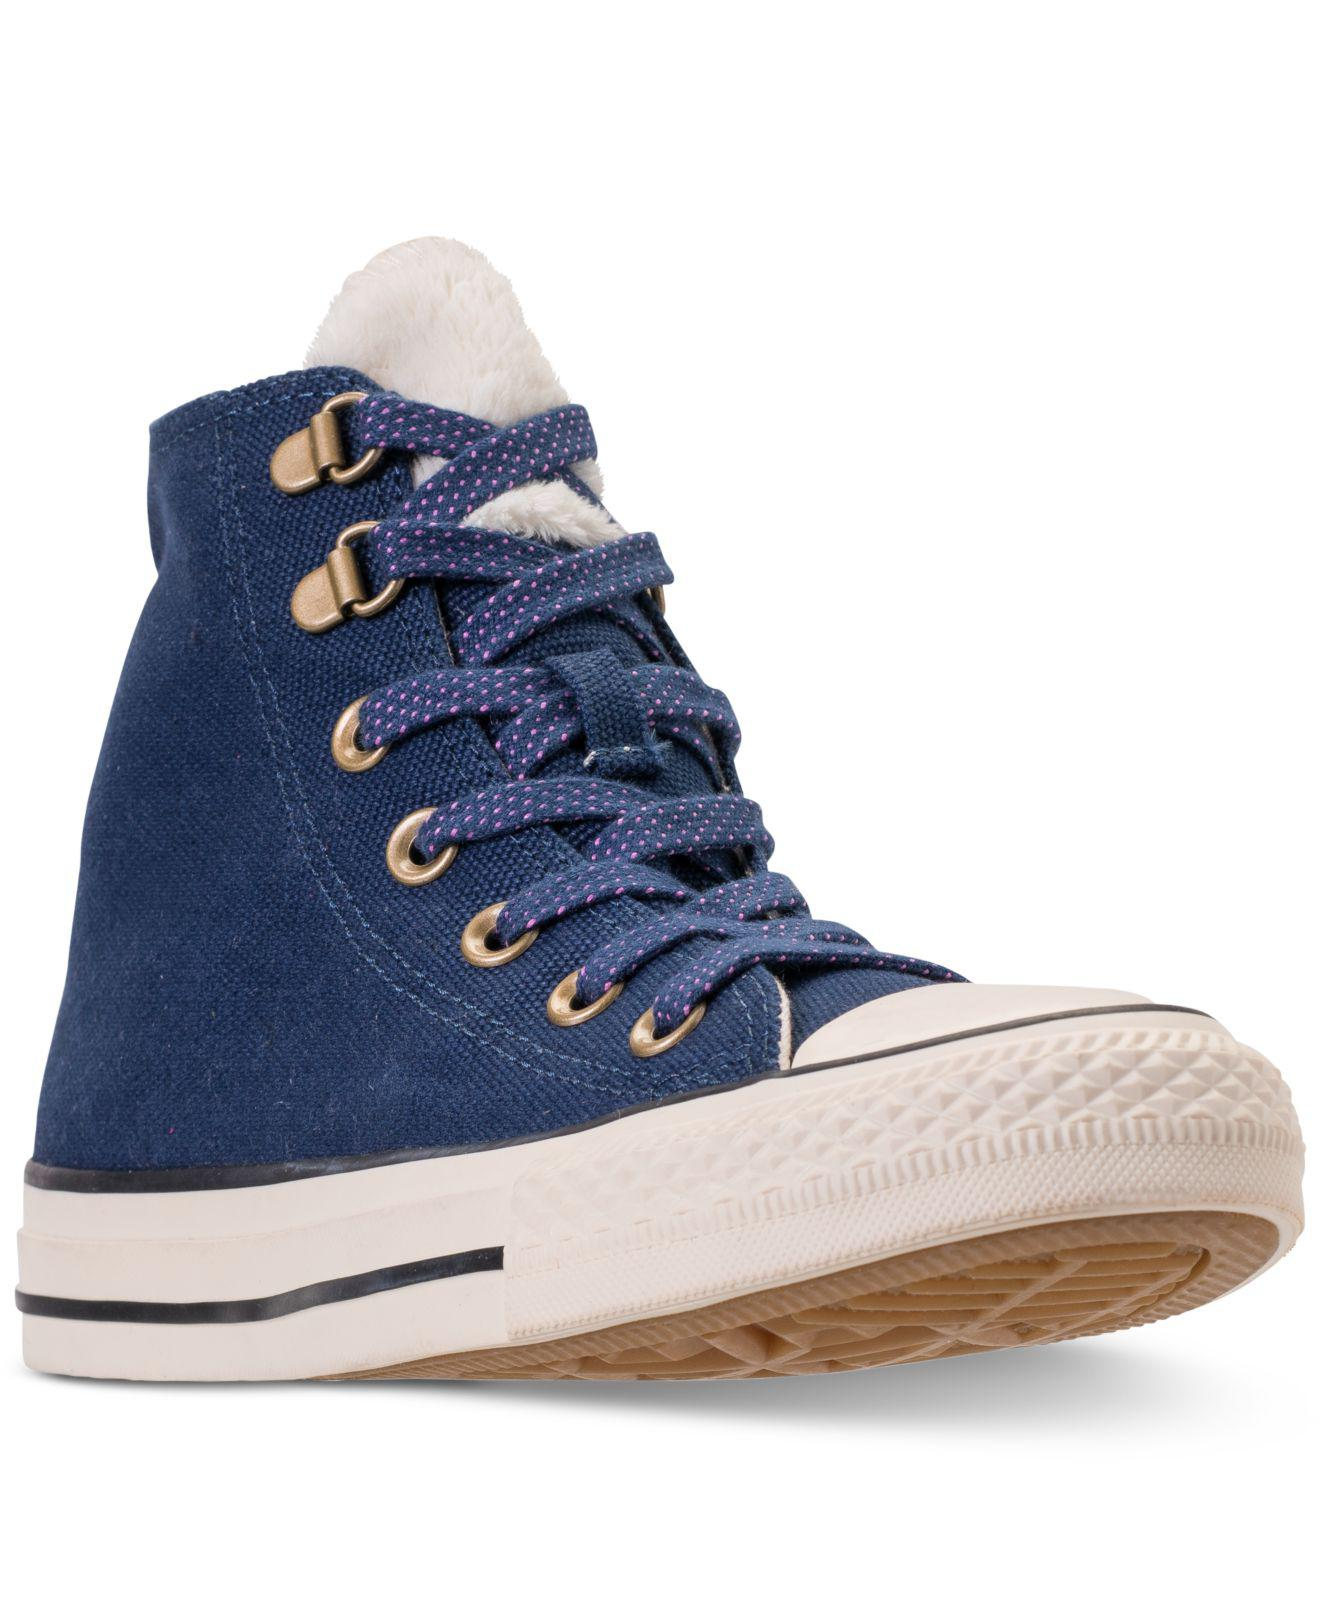 788d982d23e7 Lyst - Converse Chuck Taylor All Star Furst Love High Top Casual ...